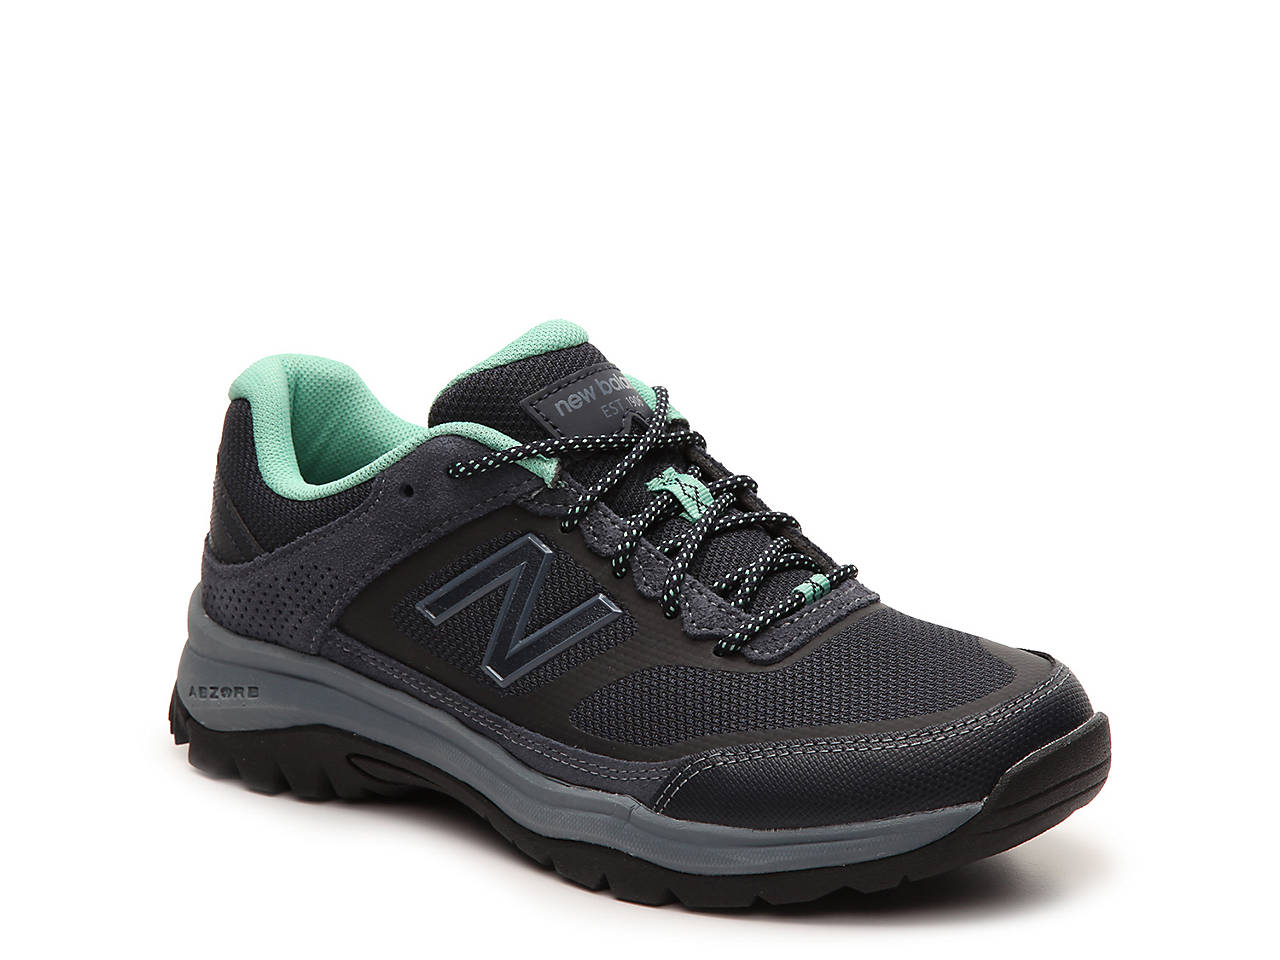 c31caf9bd9b4 New Balance 669 Trail Walking Shoe - Women s Women s Shoes